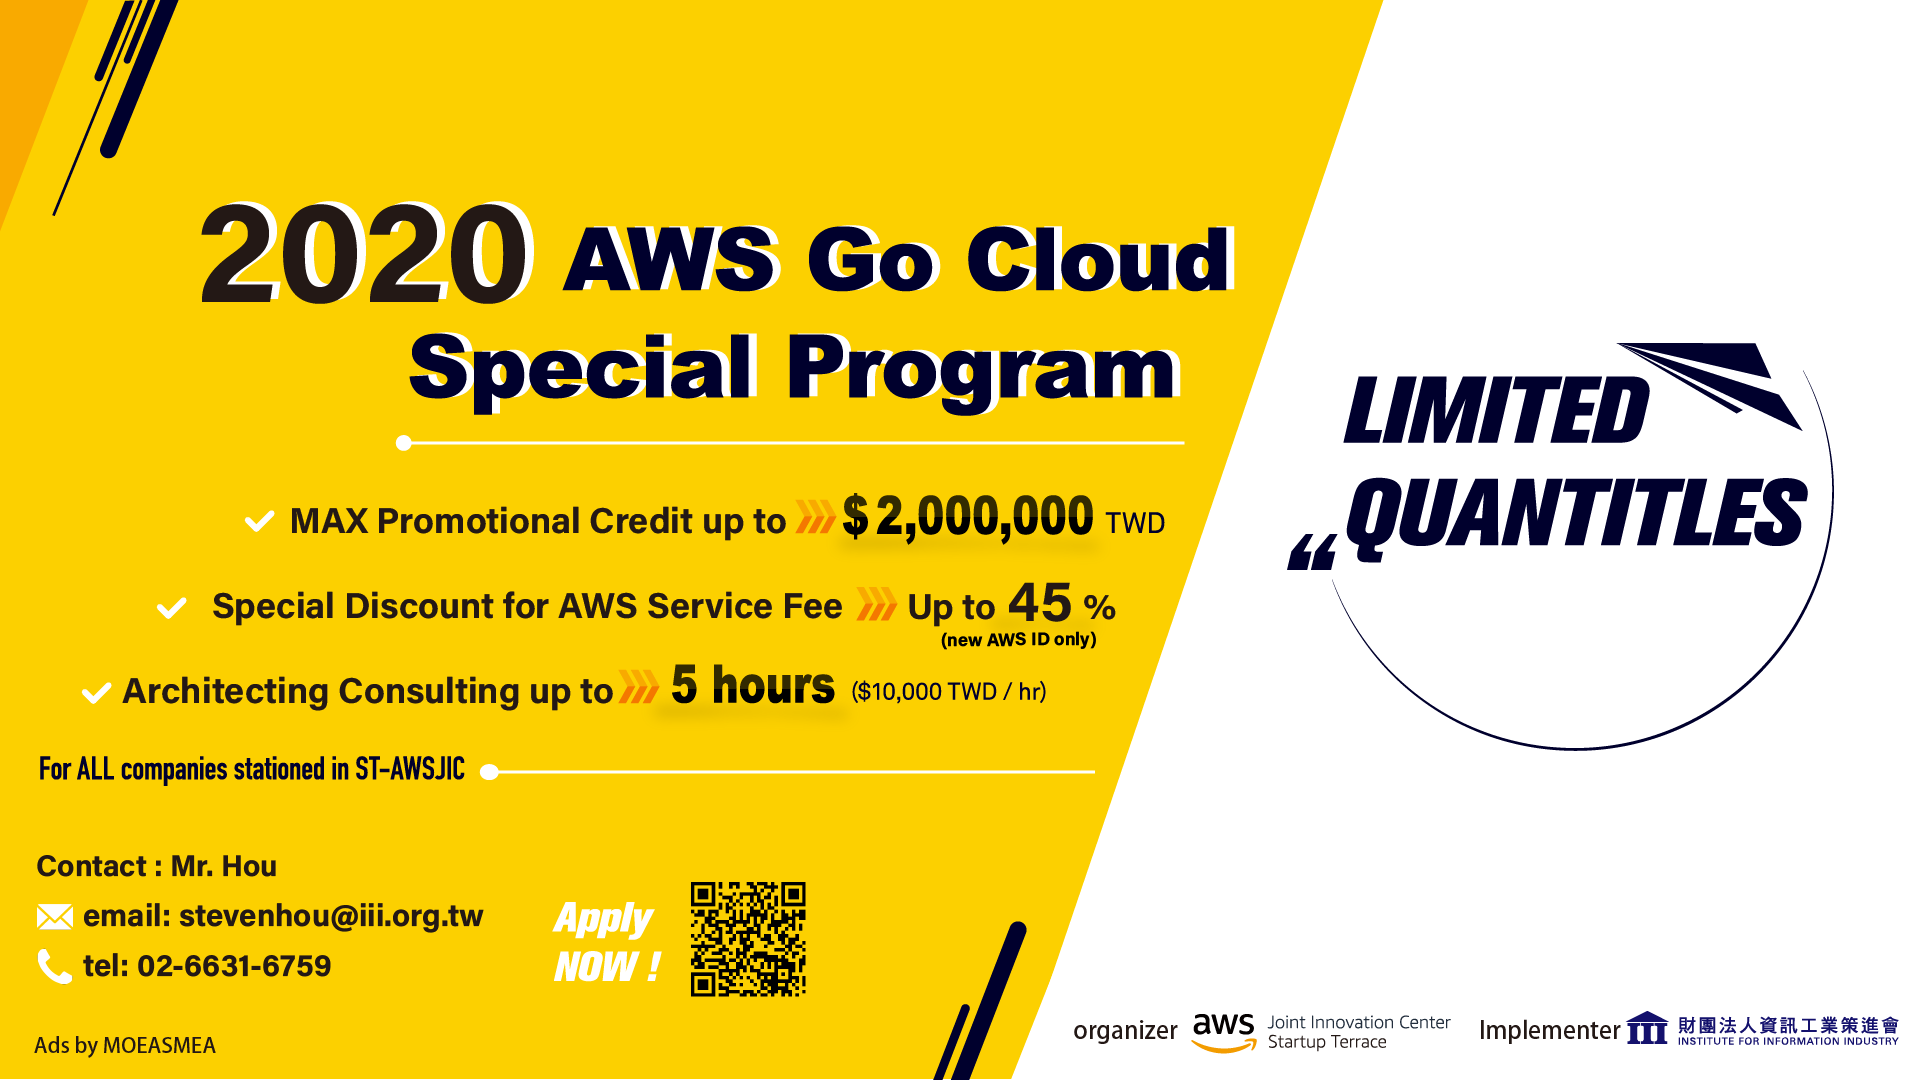 2020 AWS Go Cloud Special Program